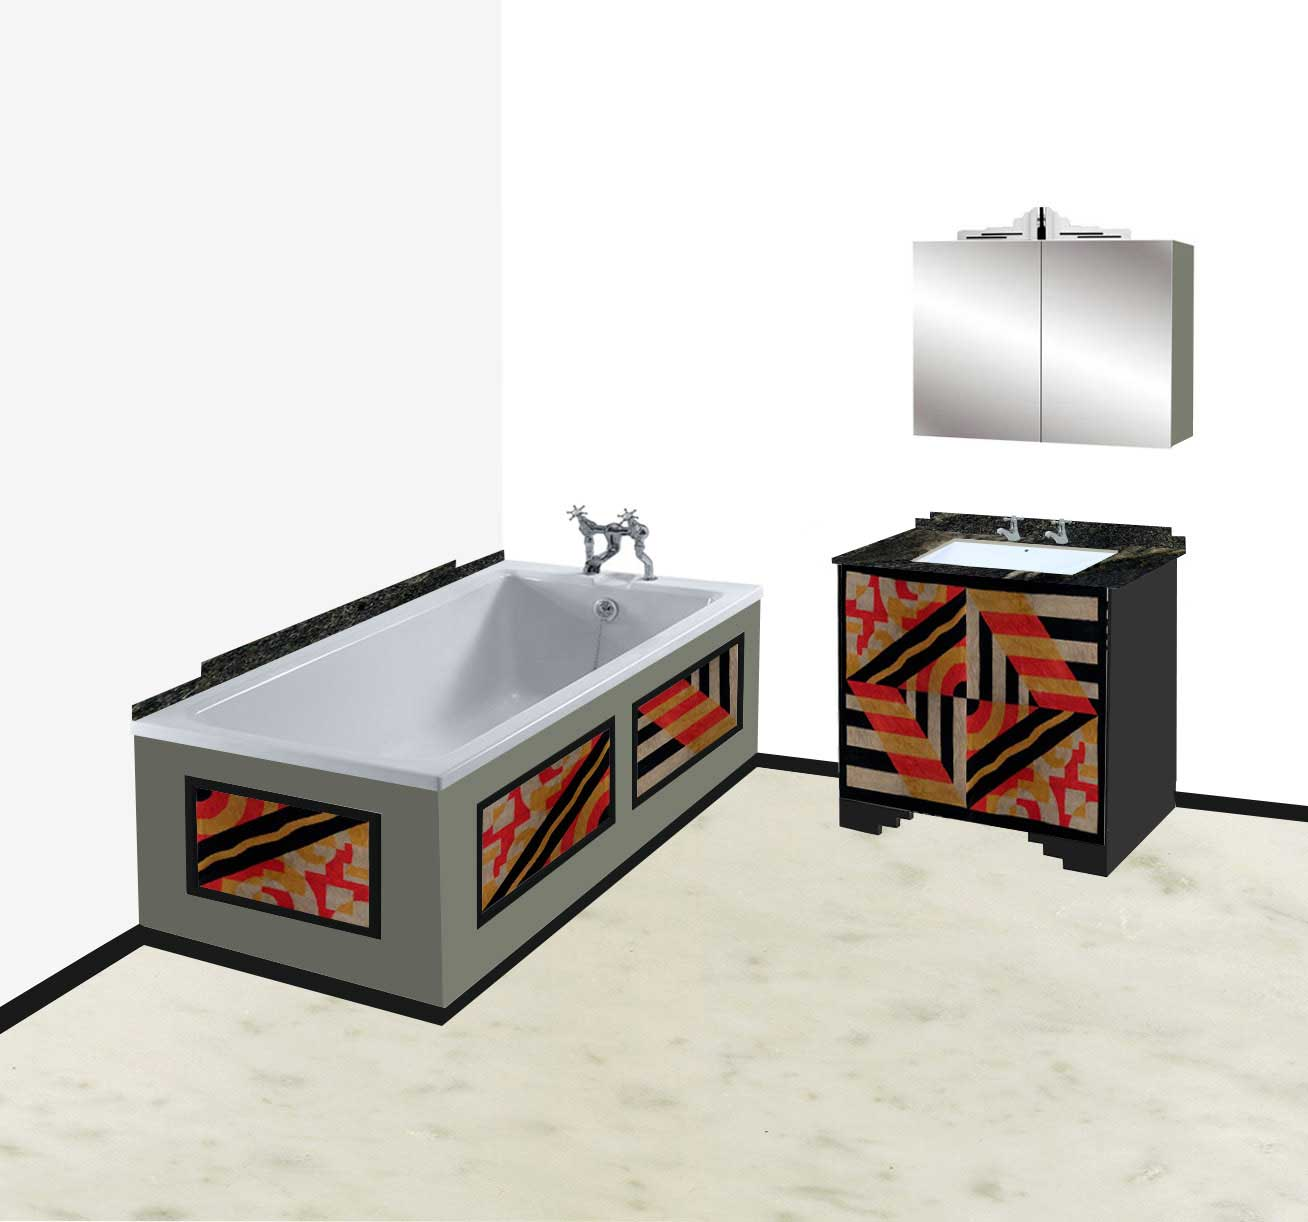 New Art Deco Abstract Cubist Designs Bathroom Vanity Unit Bathroom Furn